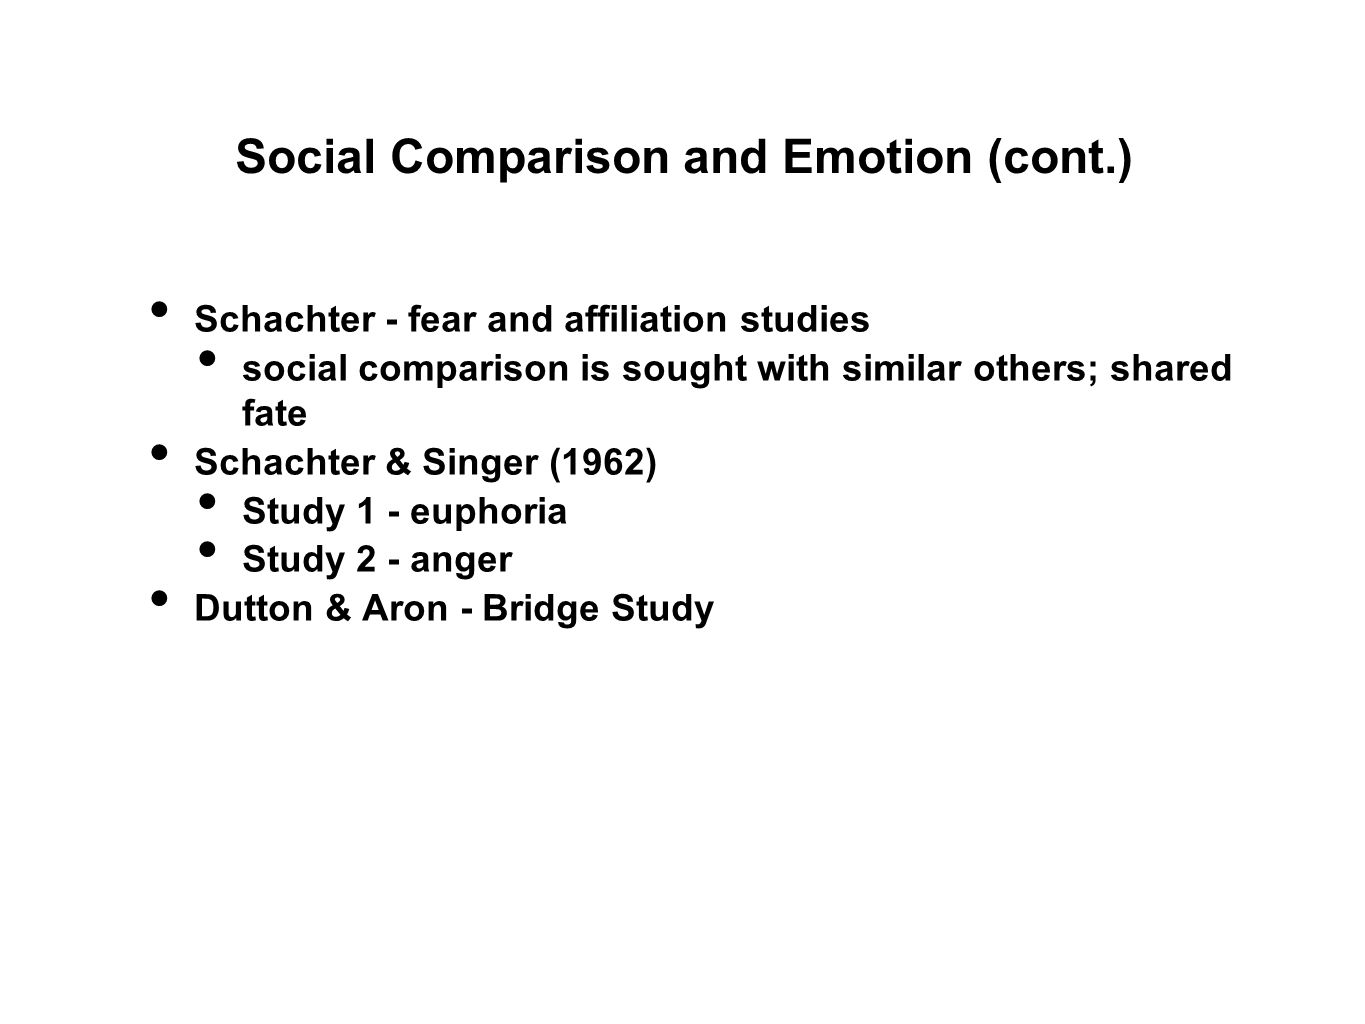 Schachter - fear and affiliation studies social comparison is sought with similar others; shared fate Schachter & Singer (1962) Study 1 - euphoria Stu